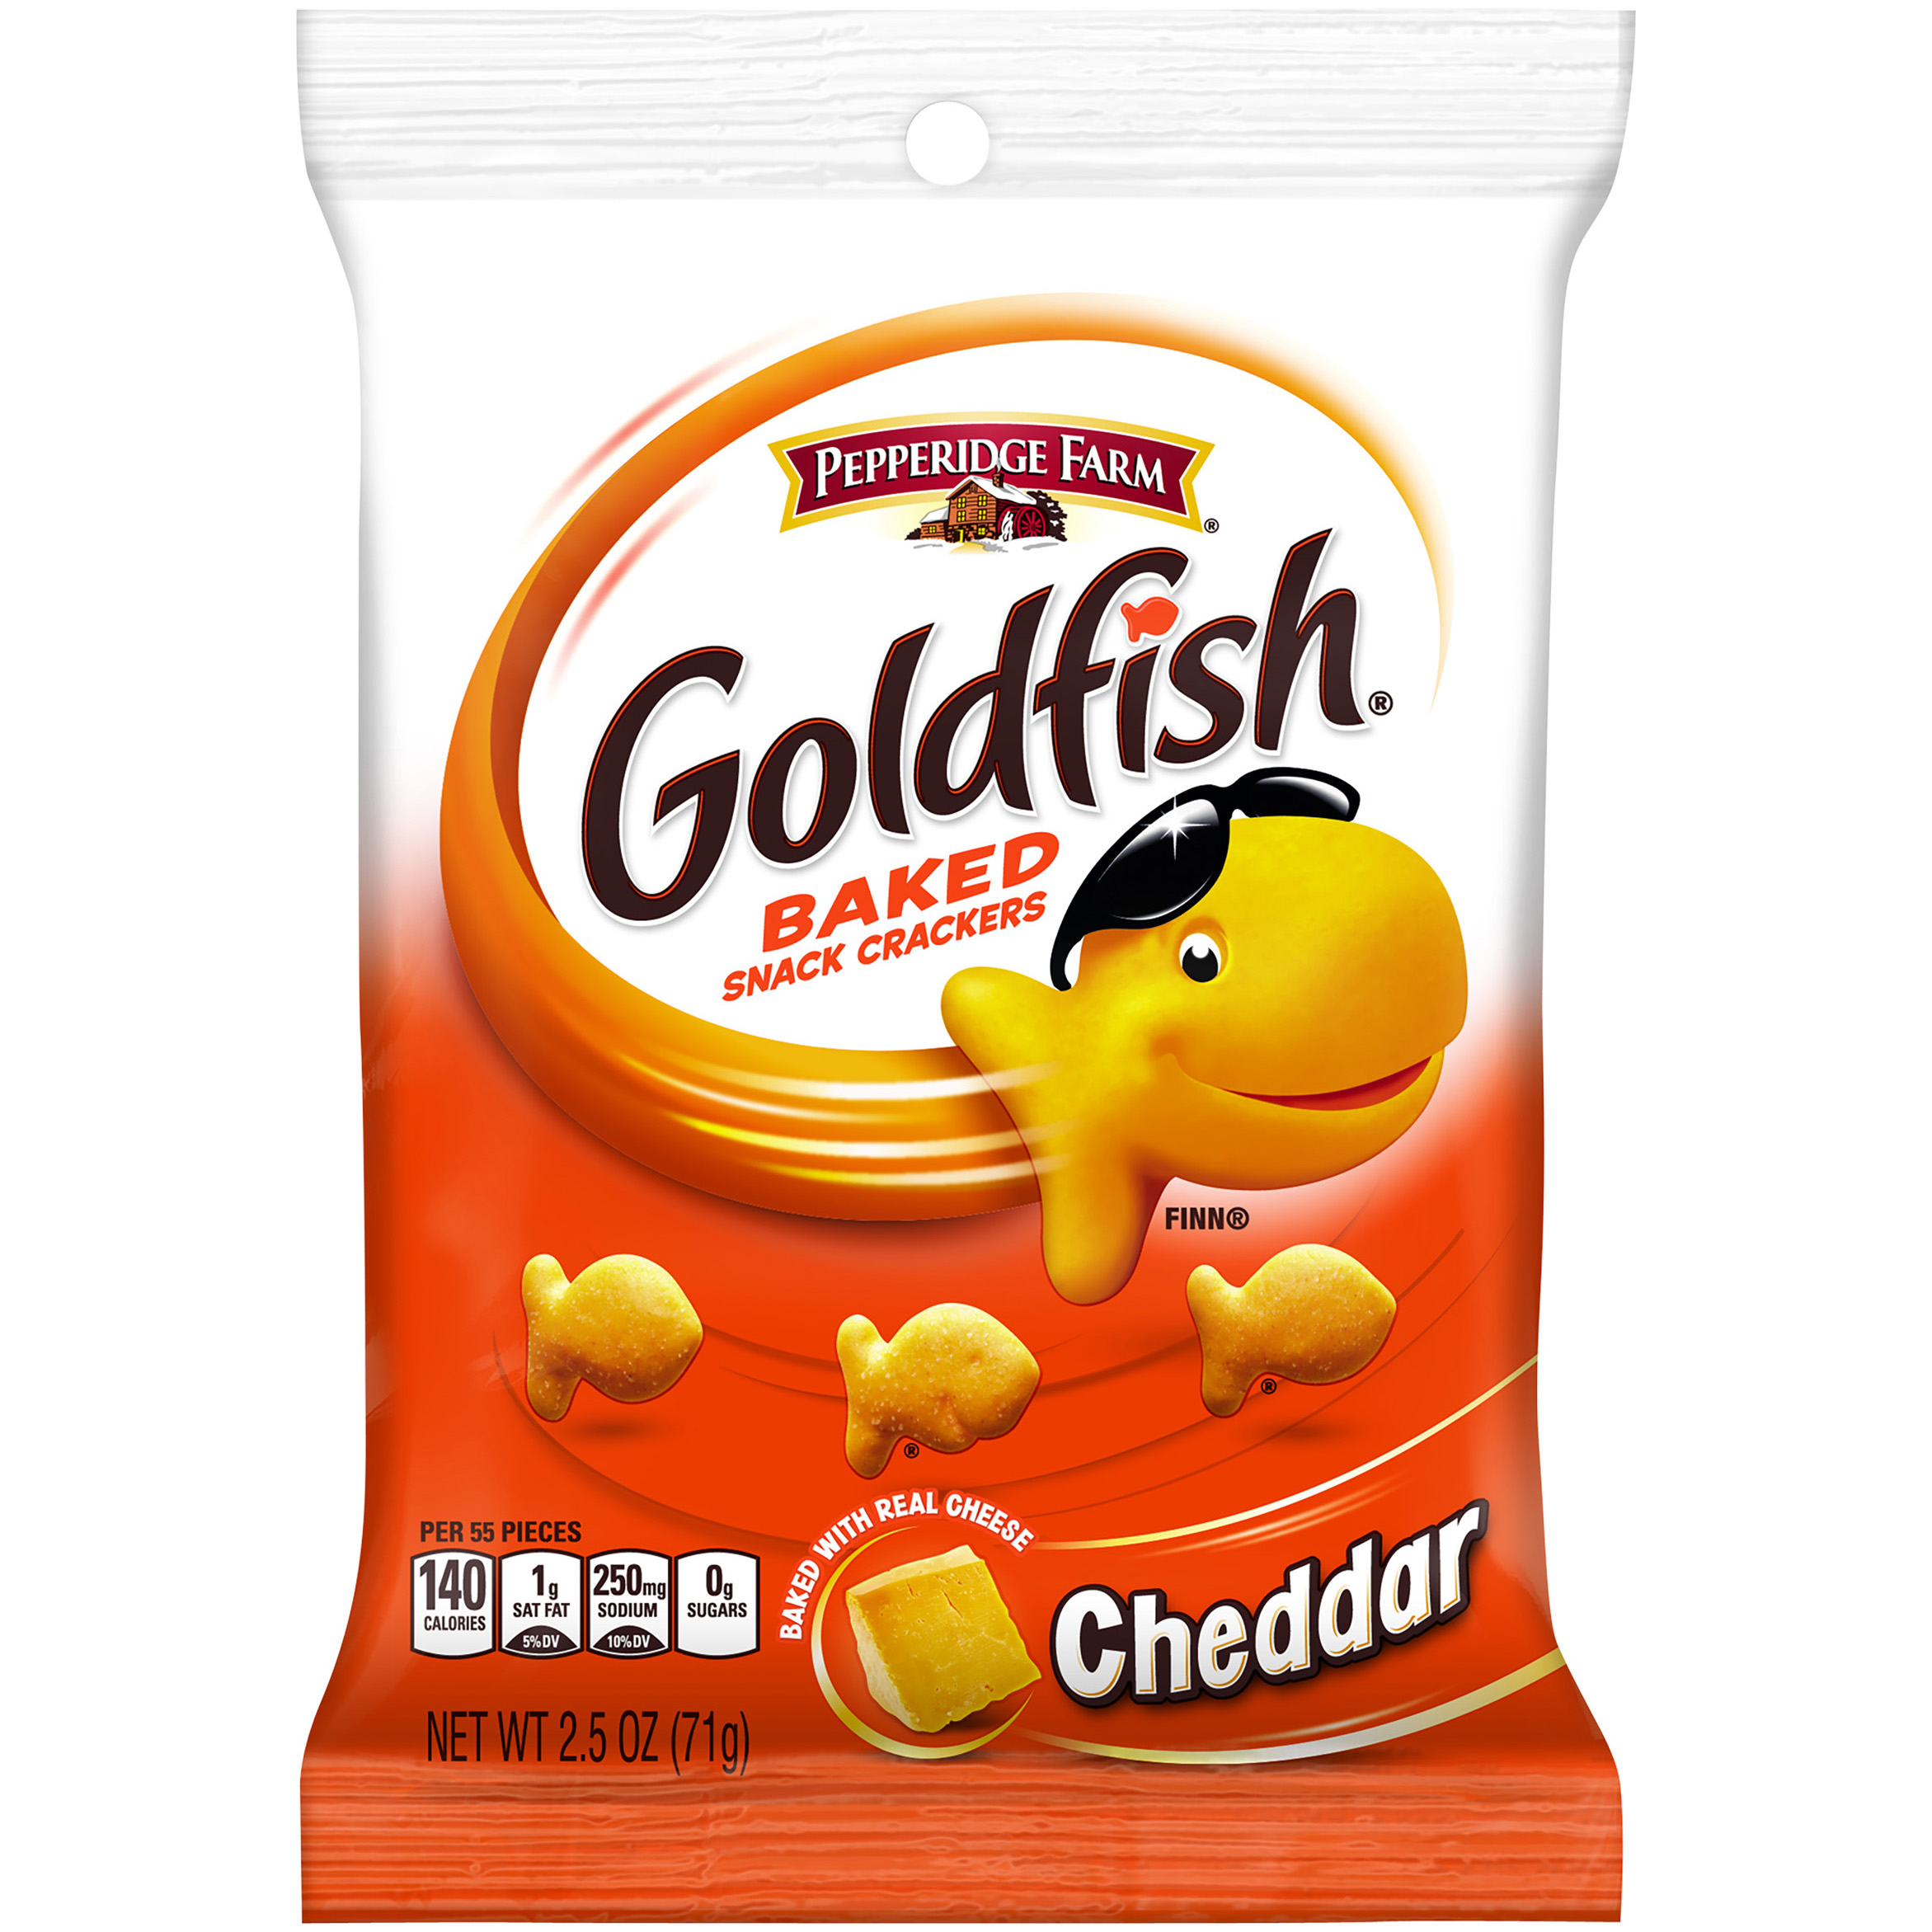 Pepperidge Farm Goldfish Baked Cheddar Snack Crackers 2.5 Oz.